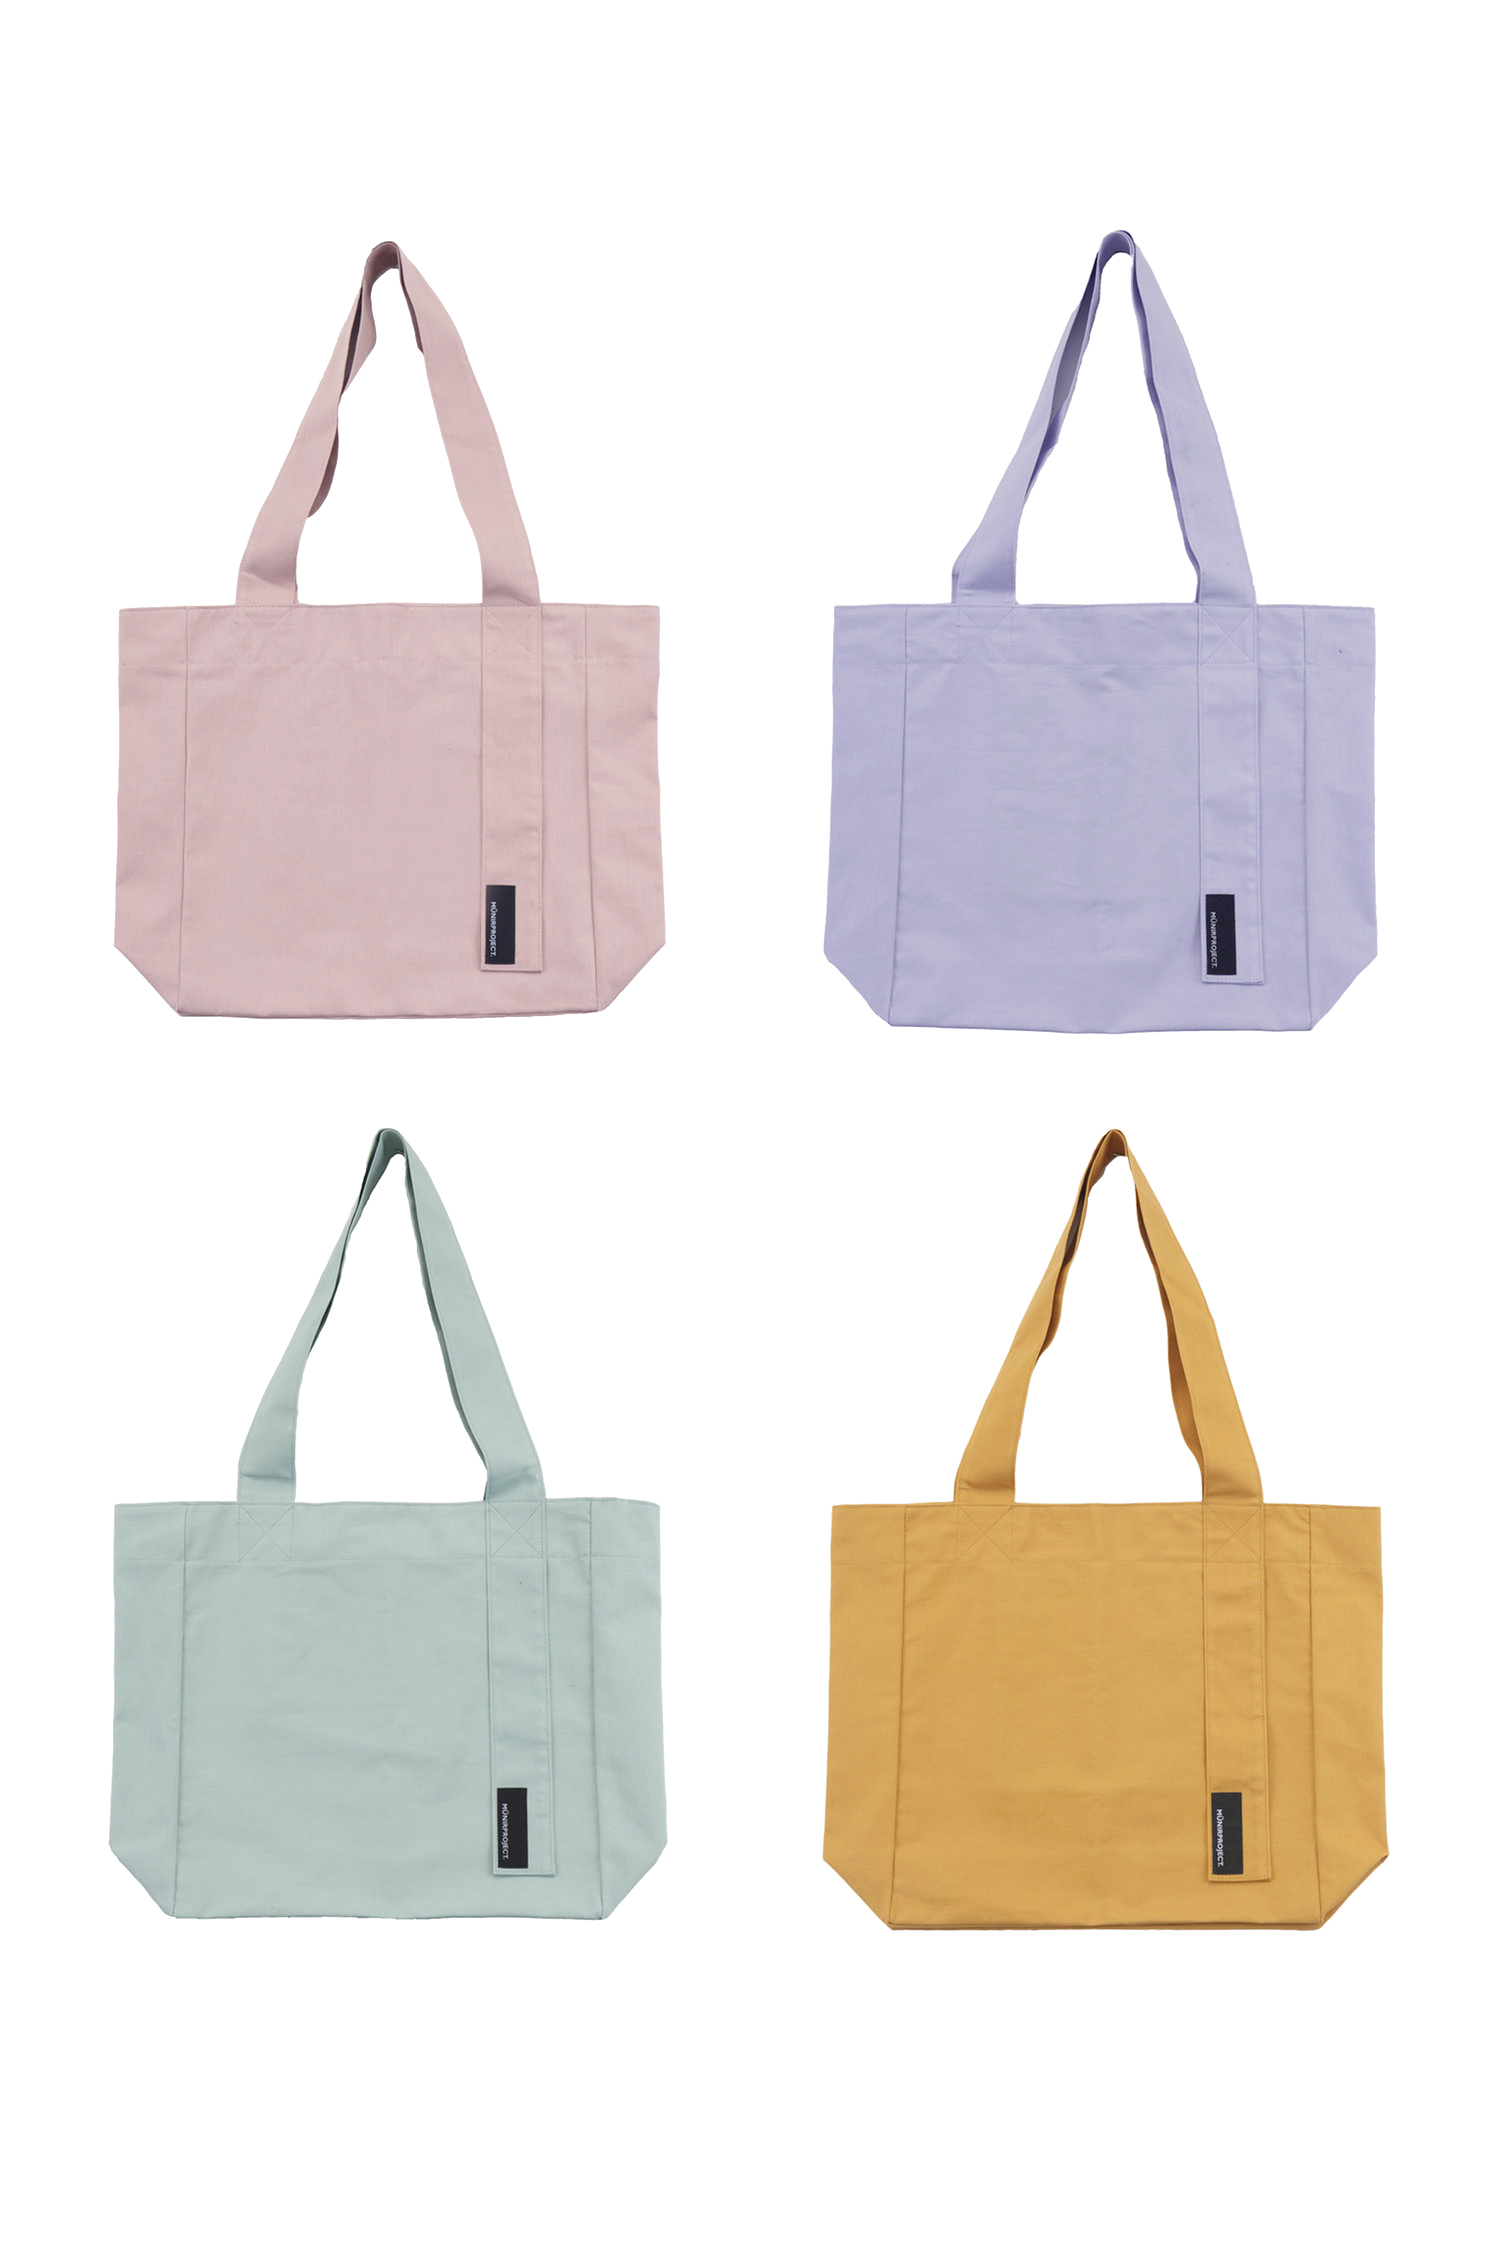 MUNIR PROJECT – 'MAGNET' BASIC TOTE BAG — FIG COLLECTIVE